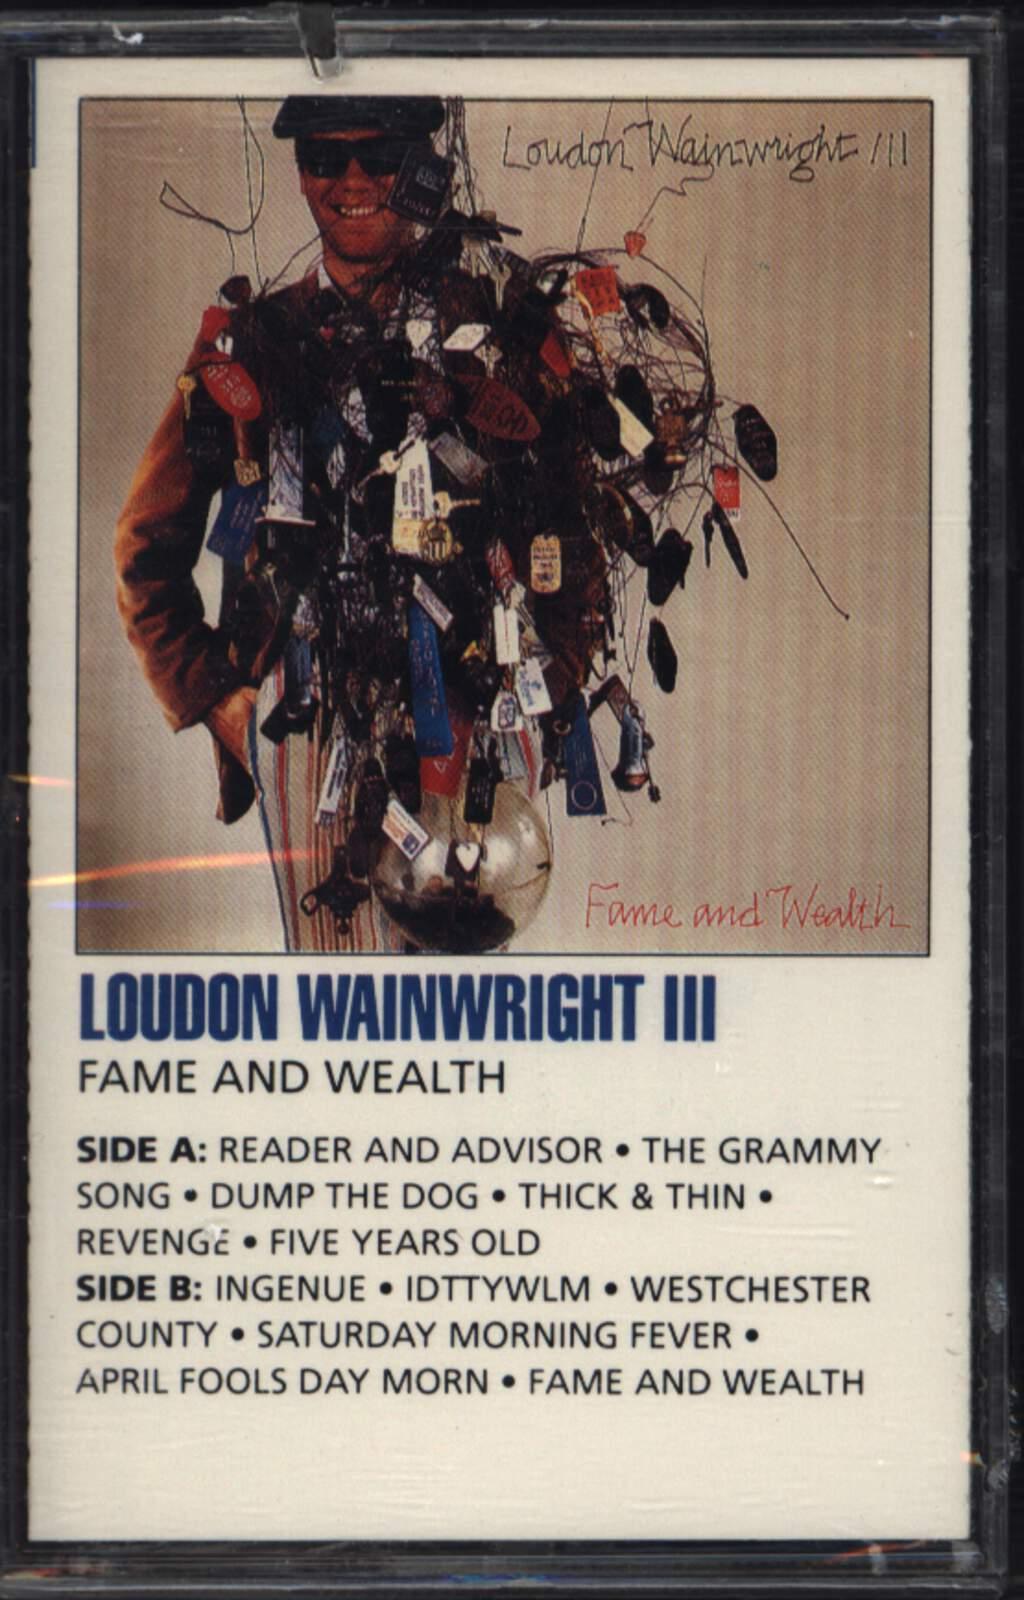 Loudon Wainwright III: Fame And Wealth, Compact Cassette